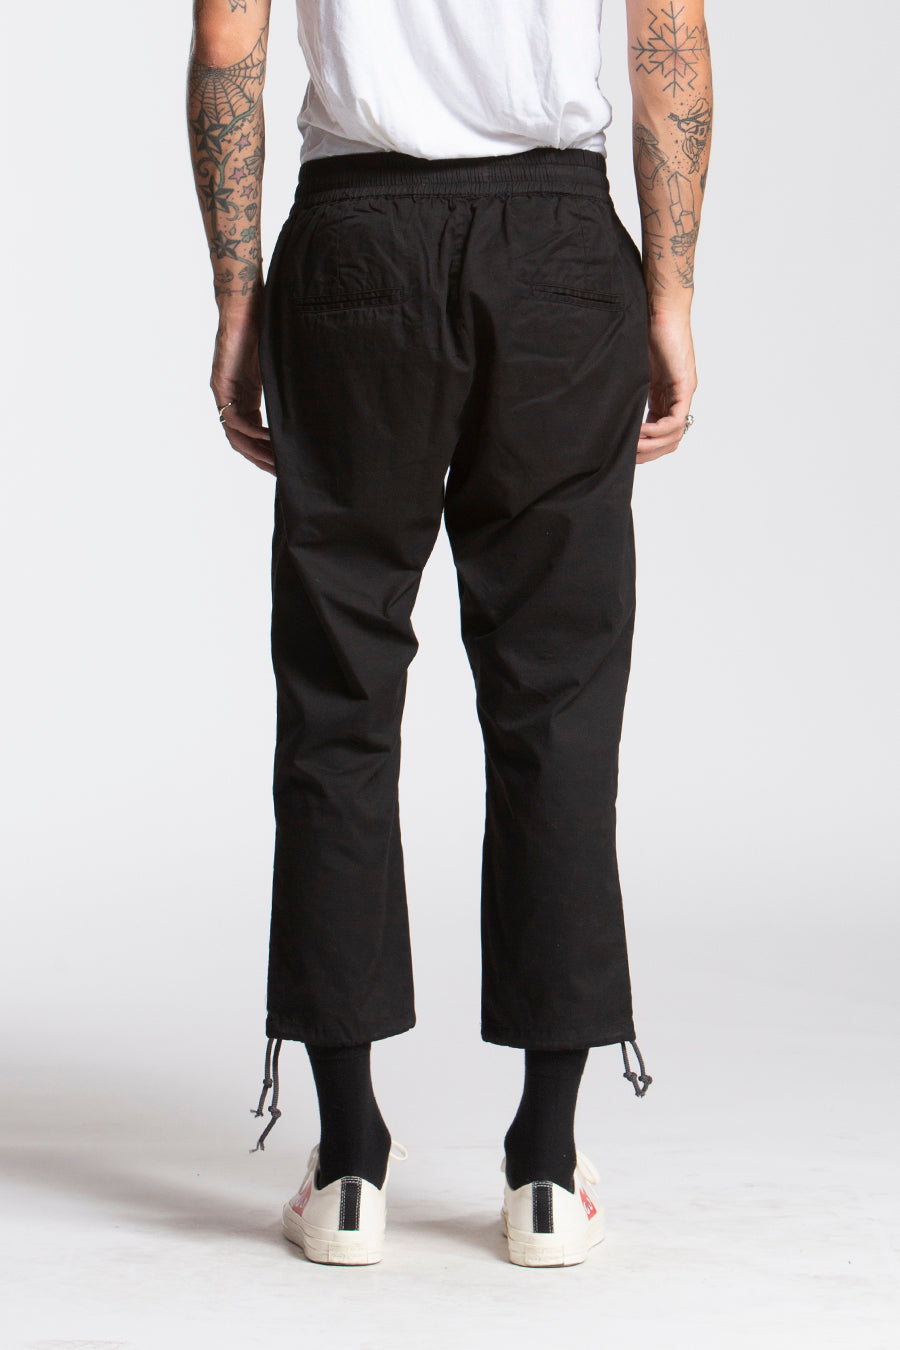 candorofficial - Cargo Pant - Bottoms